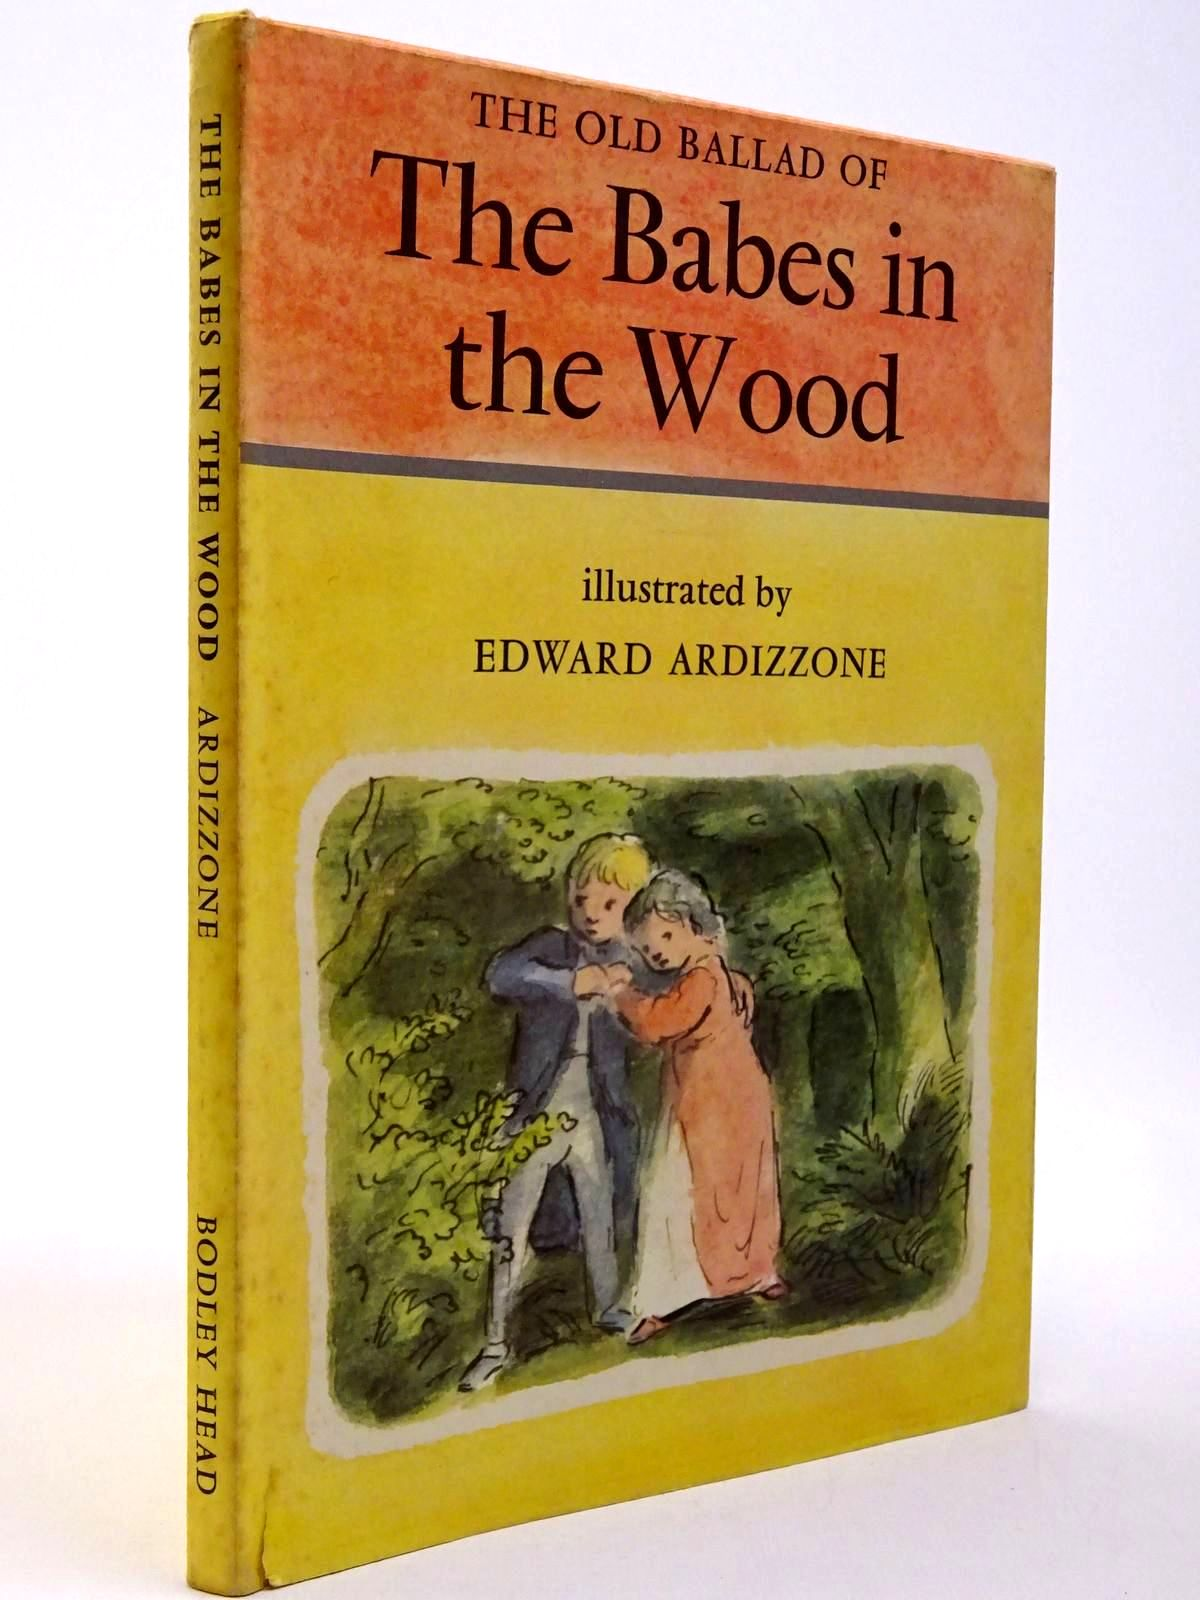 Photo of THE OLD BALLAD OF THE BABES IN THE WOOD written by Lines, Kathleen illustrated by Ardizzone, Edward published by The Bodley Head (STOCK CODE: 2130149)  for sale by Stella & Rose's Books